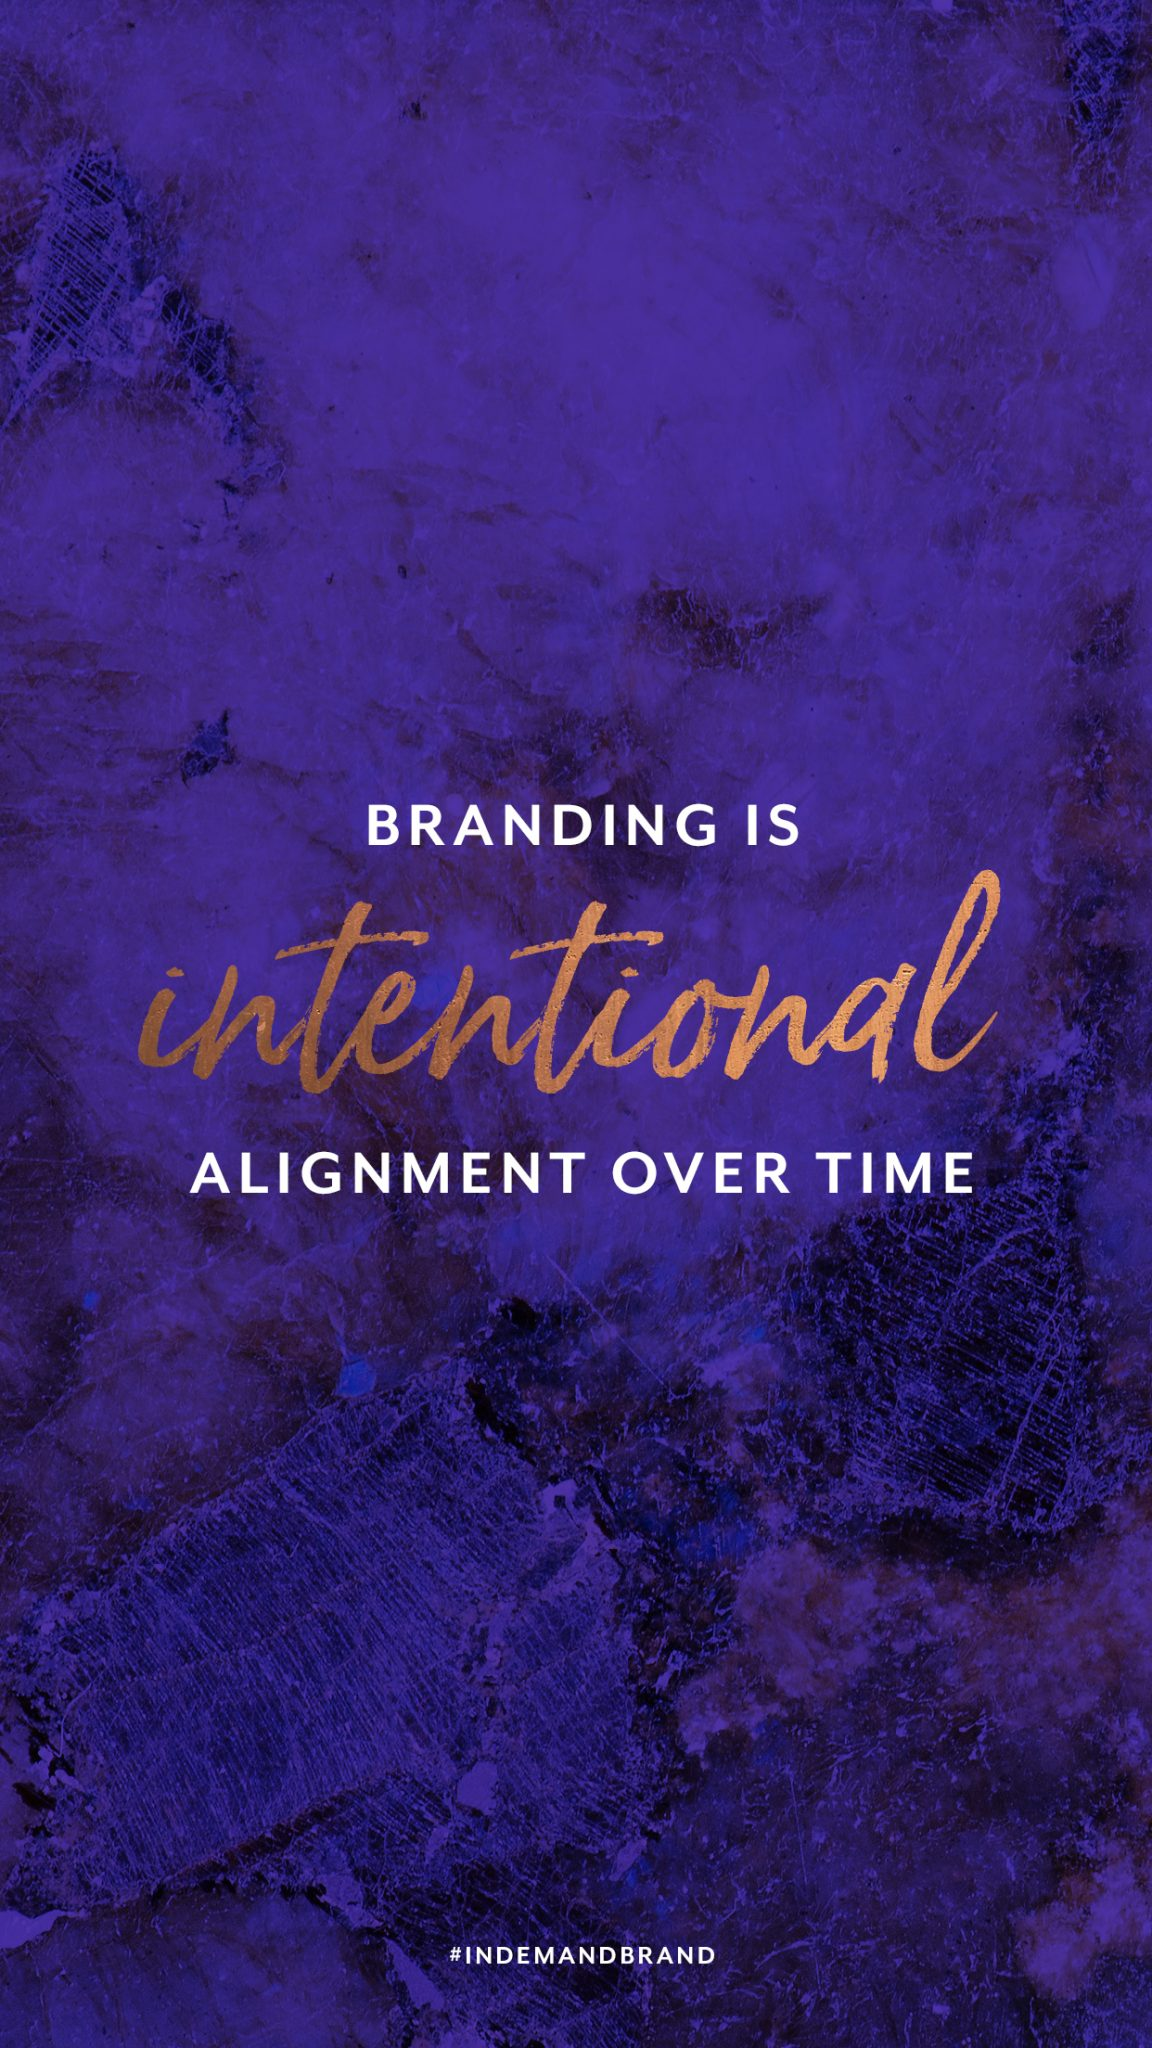 Branding is intentional alignment over time. #InDemandBrand